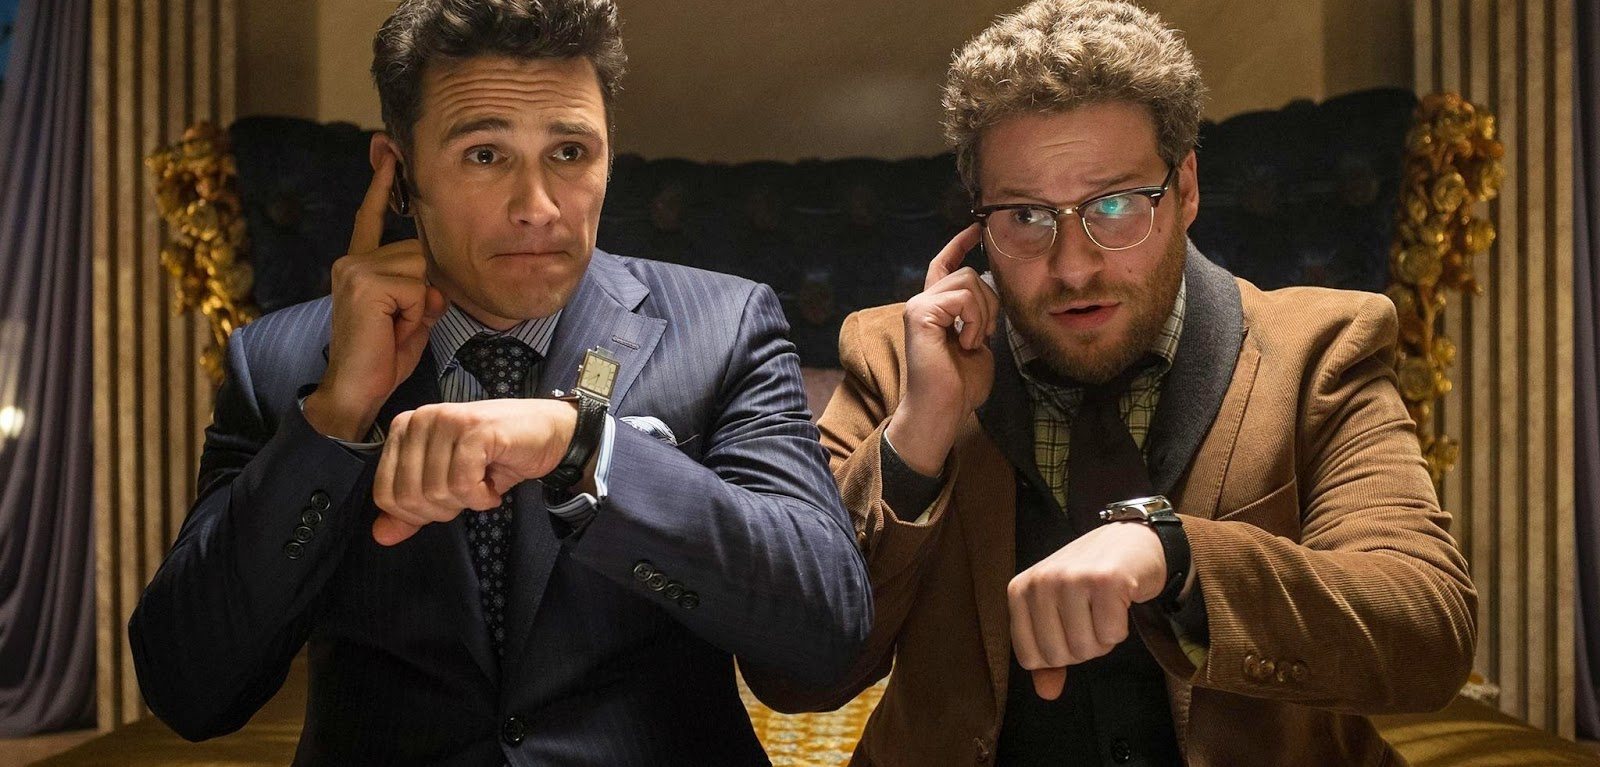 James Franco e Seth Rogen tentam matar Kim Jong-un no trailer da comédia The Interview